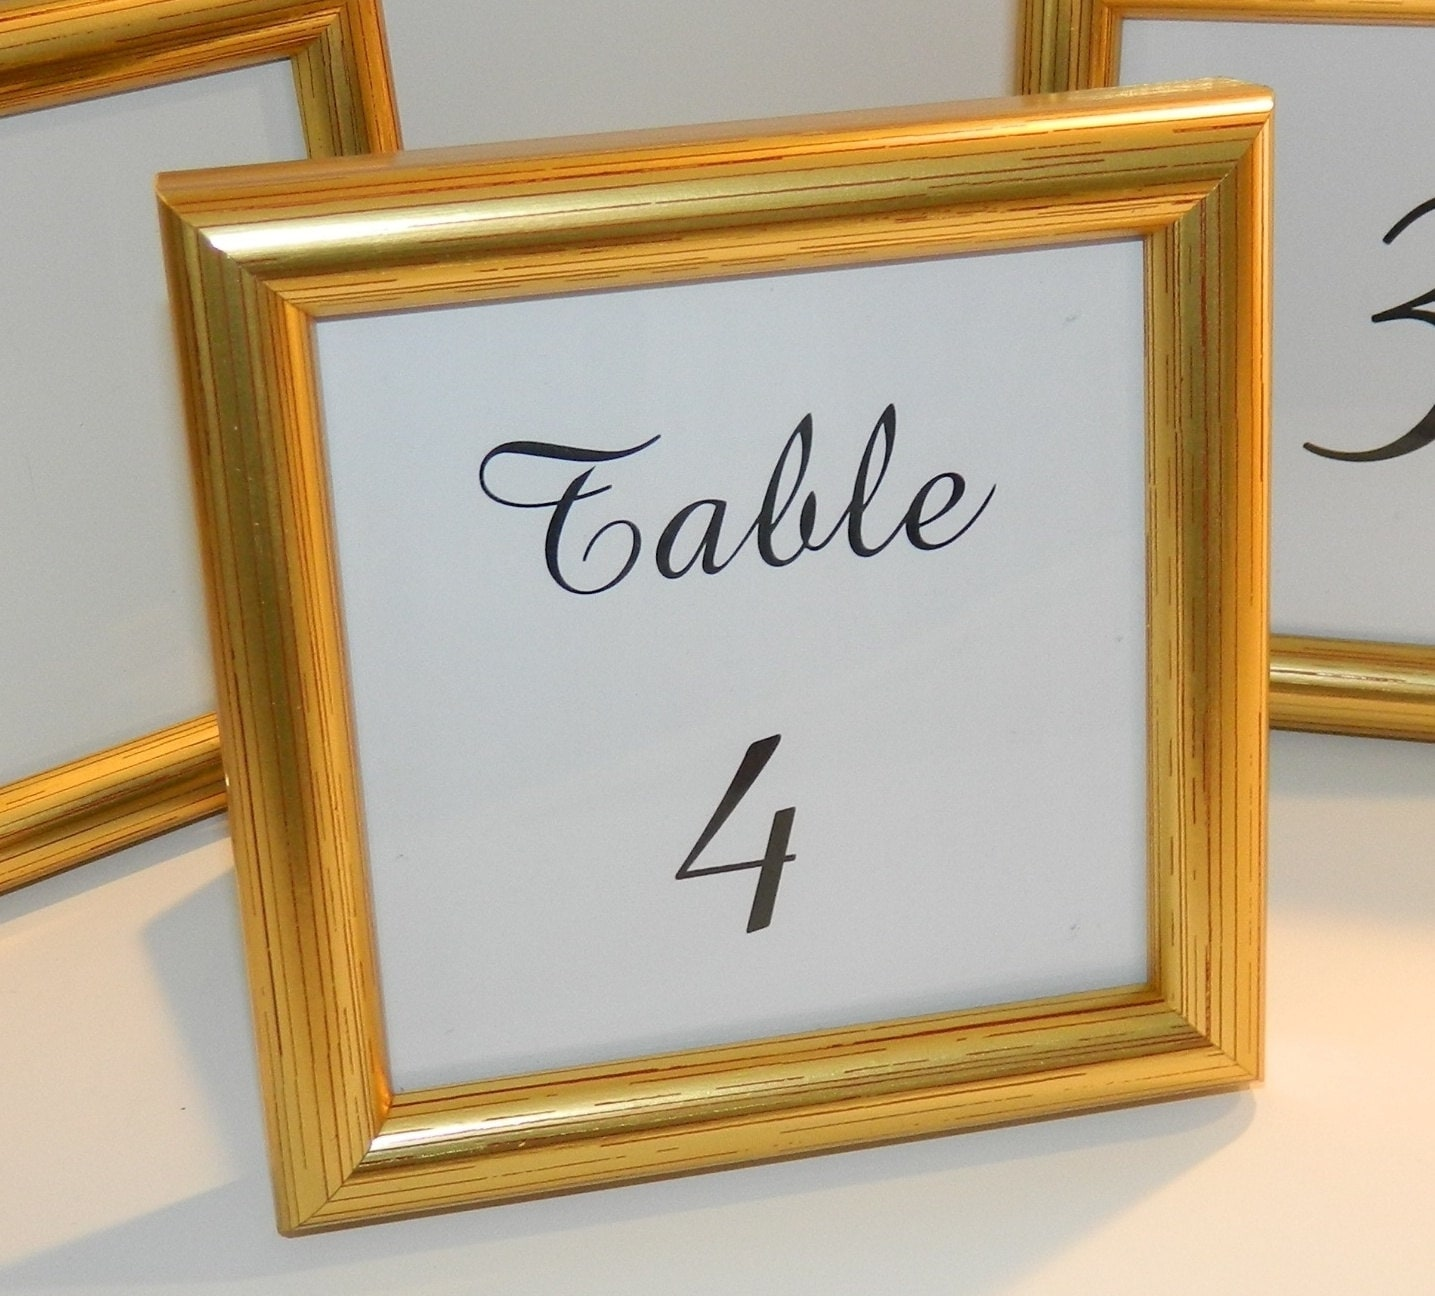 SPECIAL - Small Gold Frame for Wedding Table Numbers, Party Favors ...